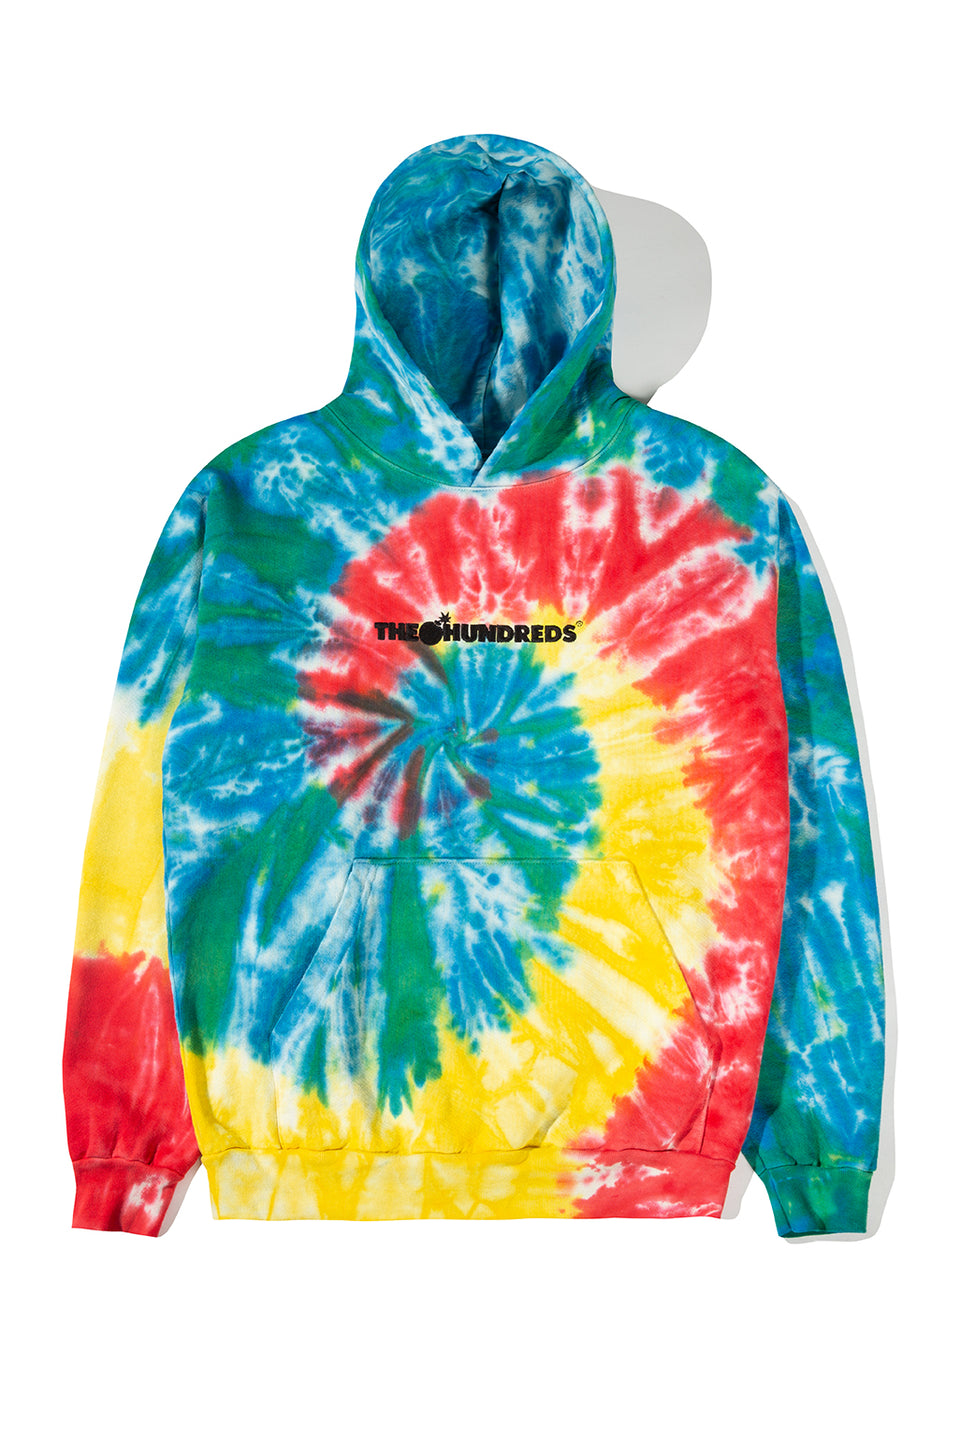 Bar Logo Tie Dye Pullover Hoodie by The Hundreds